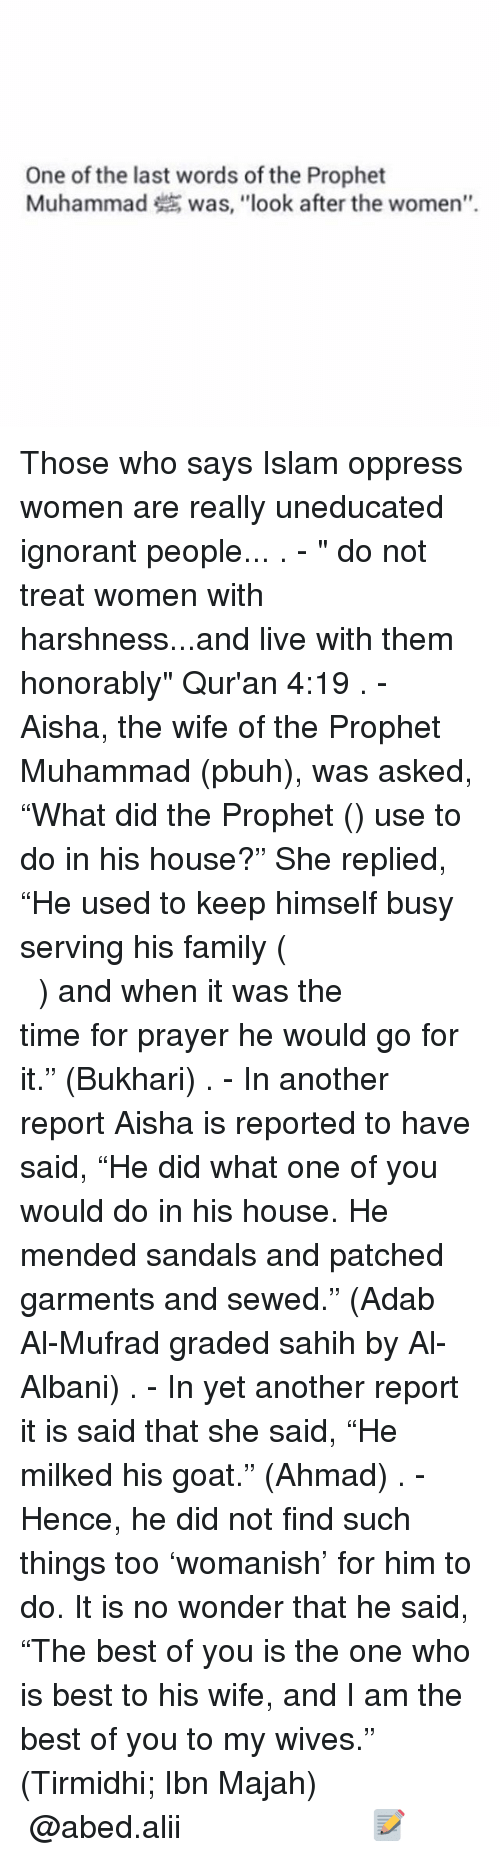 "aisha: One of the last words of the Prophet  Muhammad was, ""look after the women"". Those who says Islam oppress women are really uneducated ignorant people... . - "" do not treat women with harshness...and live with them honorably"" Qur'an 4:19 . - Aisha, the wife of the Prophet Muhammad (pbuh), was asked, ""What did the Prophet (ﷺ) use to do in his house?"" She replied, ""He used to keep himself busy serving his family (كَانَ يَكُونُ فِي مِهْنَةِ أَهْلِهِ) and when it was the time for prayer he would go for it."" (Bukhari) . - In another report Aisha is reported to have said, ""He did what one of you would do in his house. He mended sandals and patched garments and sewed."" (Adab Al-Mufrad graded sahih by Al-Albani) . - In yet another report it is said that she said, ""He milked his goat."" (Ahmad) . - Hence, he did not find such things too 'womanish' for him to do. It is no wonder that he said, ""The best of you is the one who is best to his wife, and I am the best of you to my wives."" (Tirmidhi; Ibn Majah) ▃▃▃▃▃▃▃▃▃▃▃▃▃▃▃▃▃▃▃▃ @abed.alii 📝"